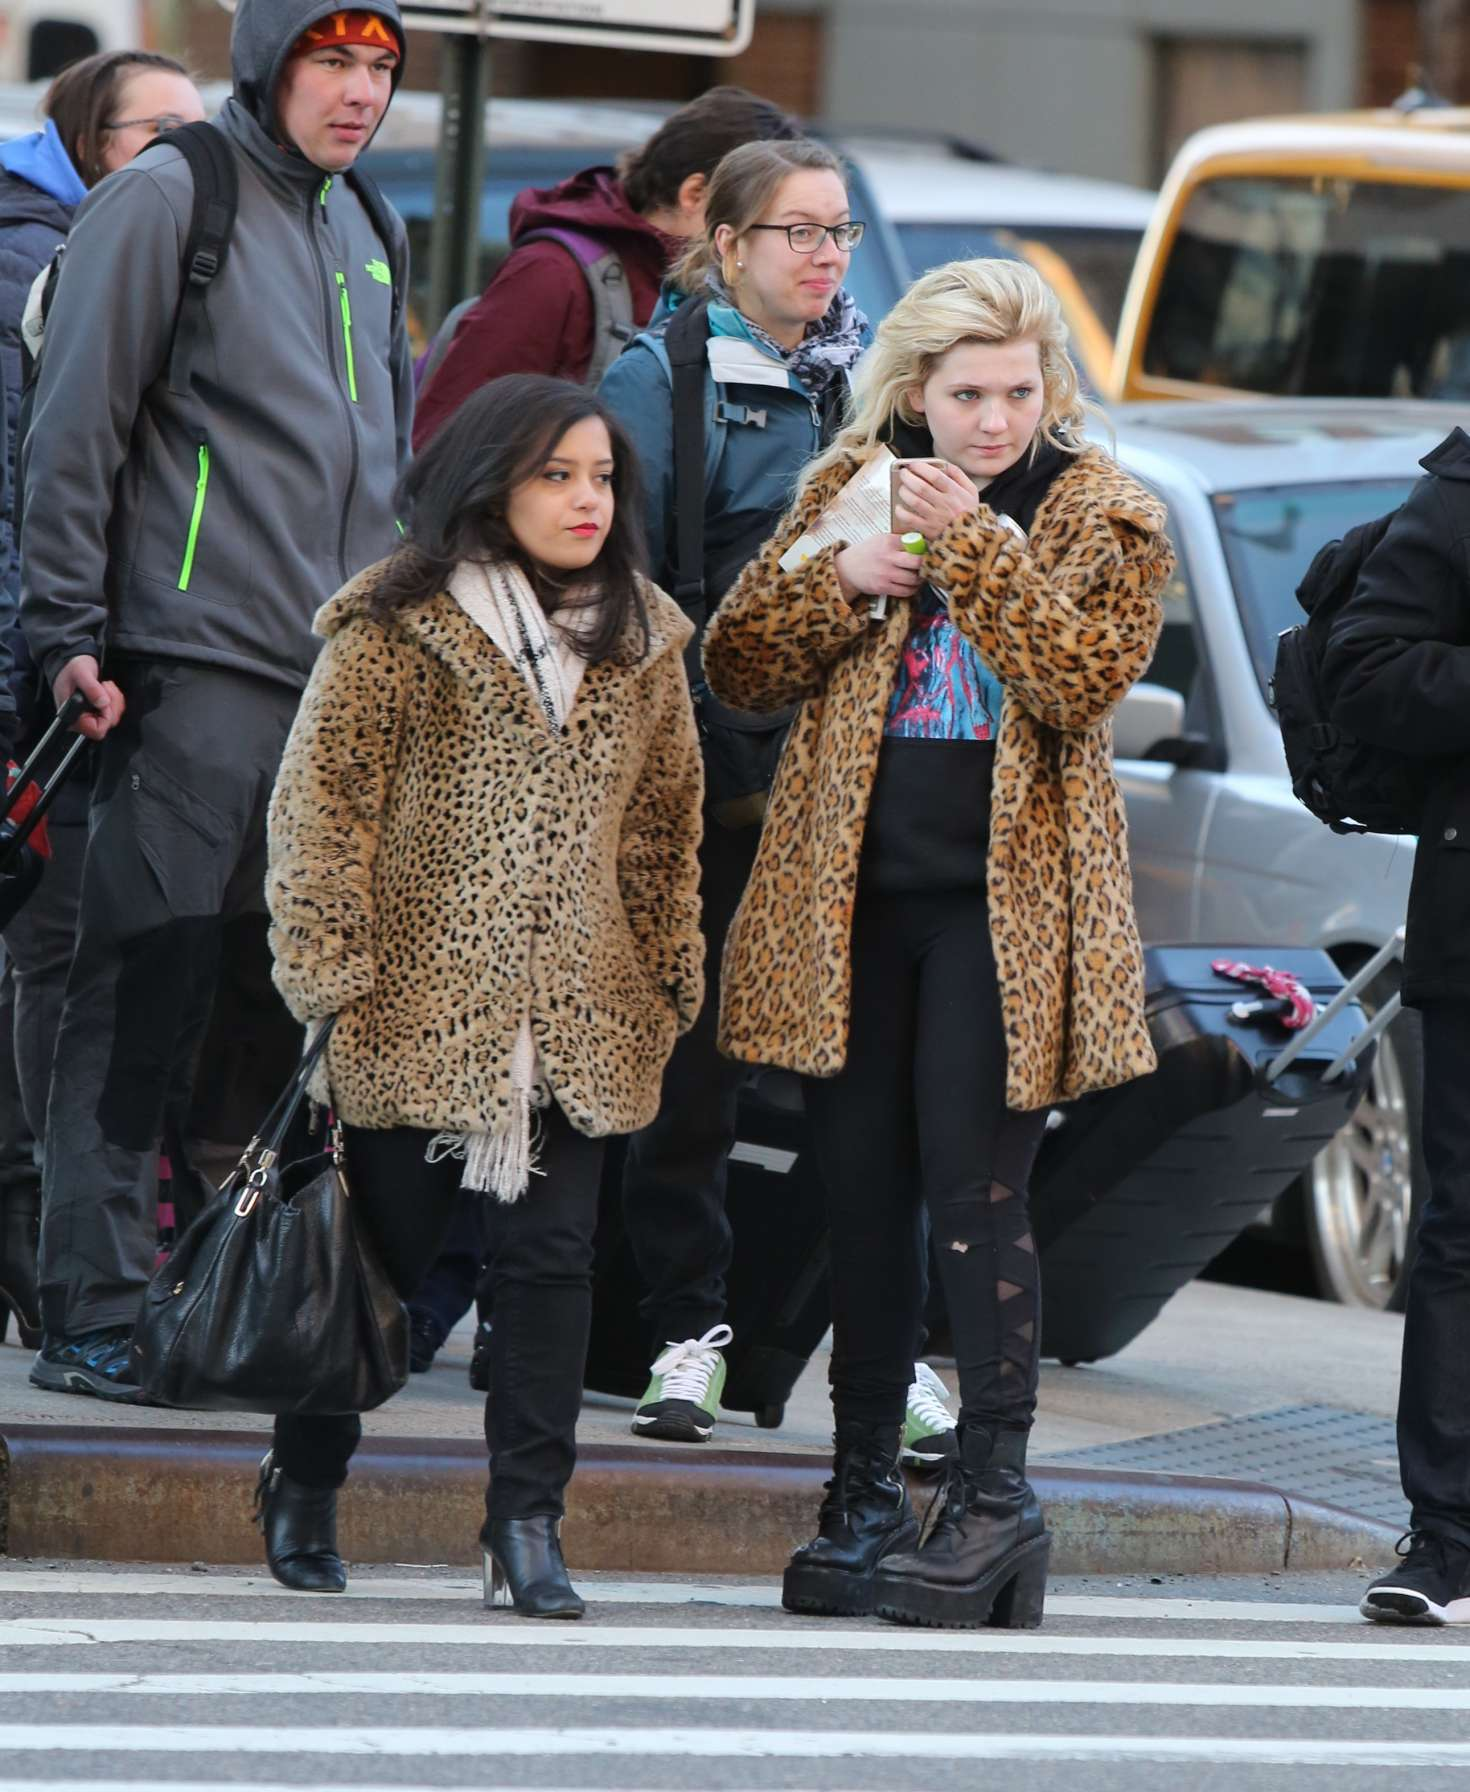 Abigail Breslin 2017 : Abigail Breslin in Fur Coat out in NYC -08